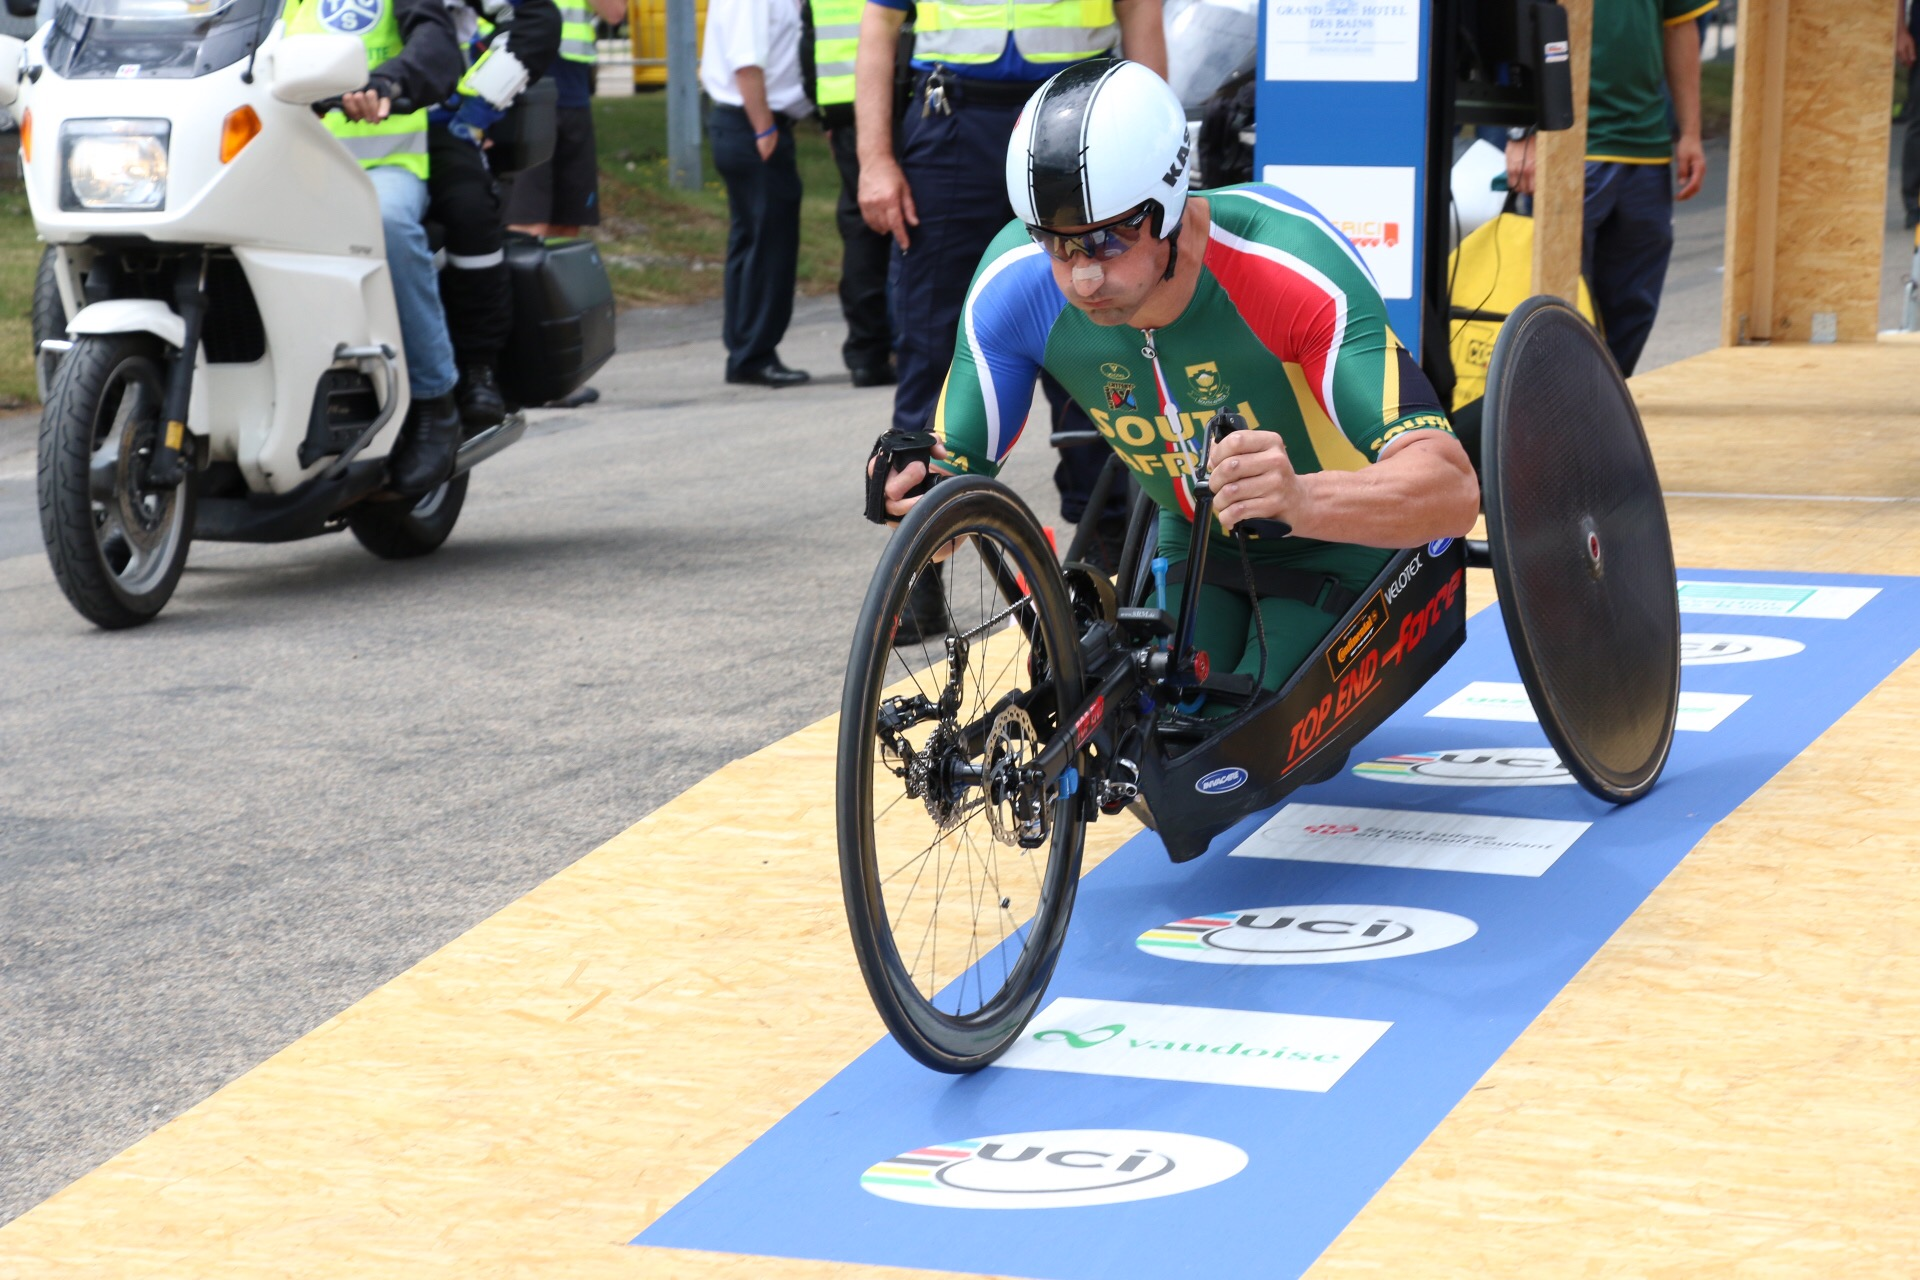 Multiple H5 World Champion and Paralympic medalist, Ernst van Dyk, is feeling ready and composed ahead of the 2015 UCI Para-cycling Road World Cup in Pietermaritzburg from 11-13 September. Photo credit: Illse du Preez.